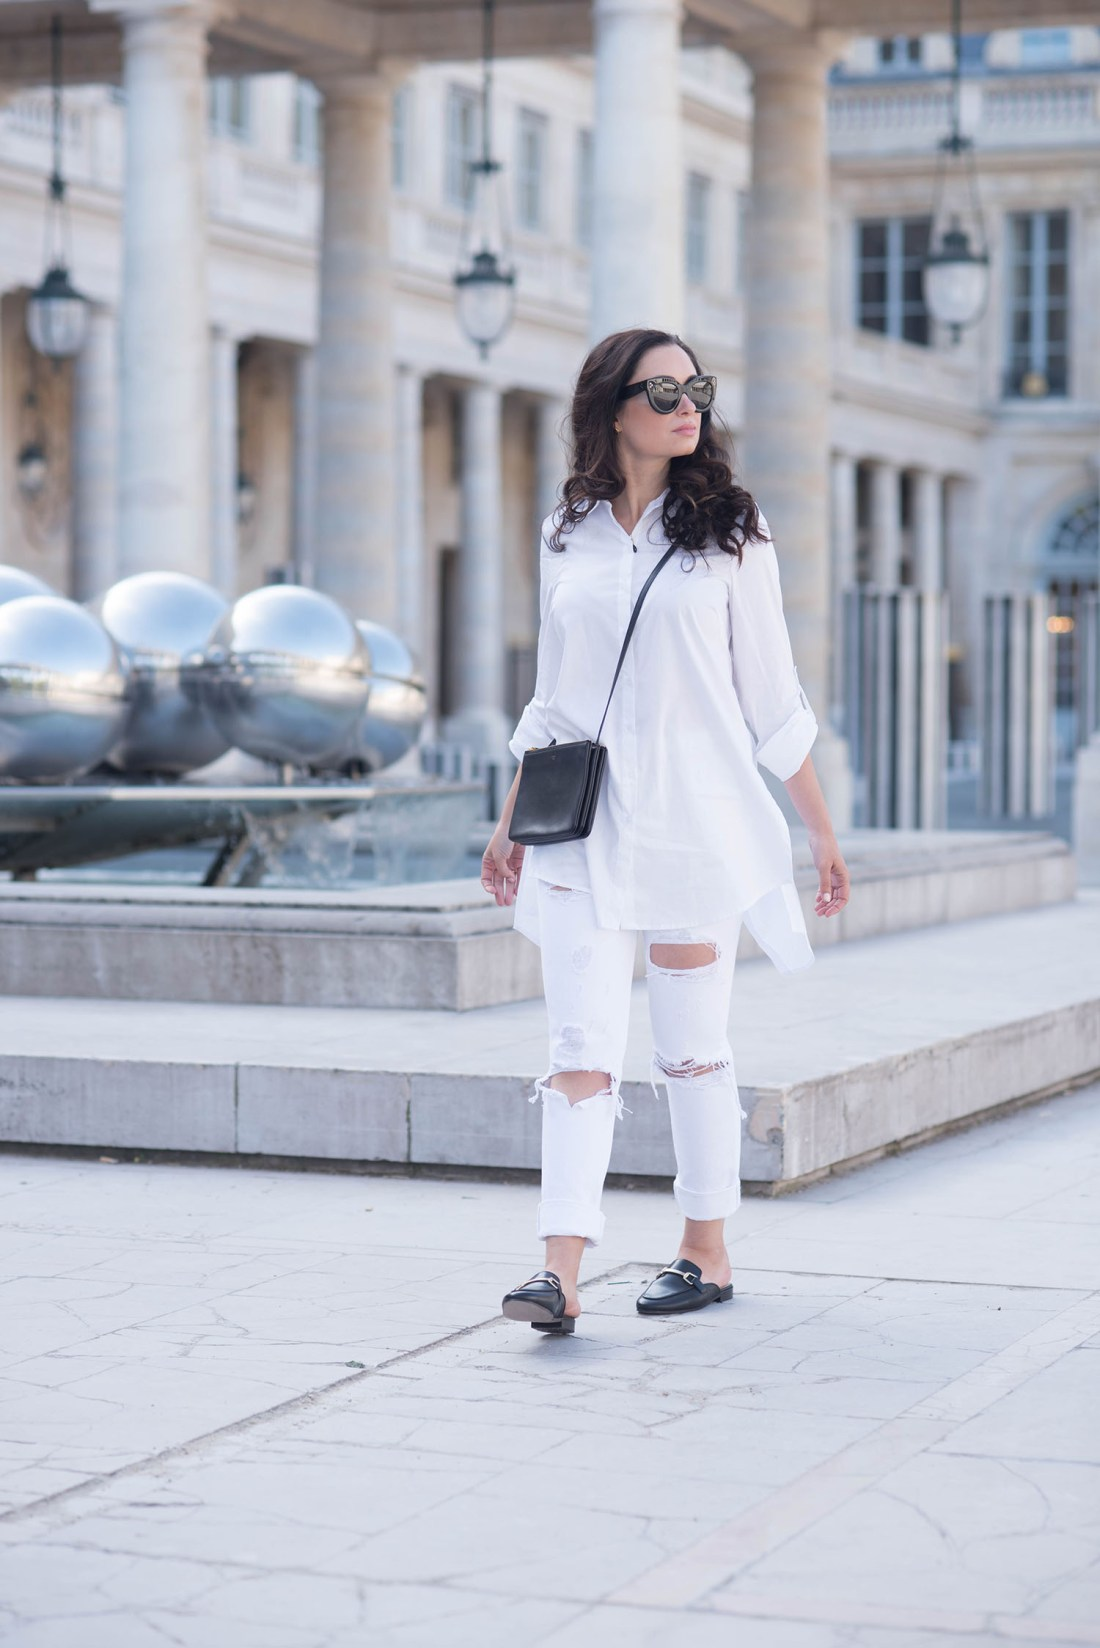 Fashion blogger Cee Fardoe of Coco & Vera at the Palais Royal in Paris, wearing Celine Audrey sunglasses and Grlfrnd Karolina white jeans